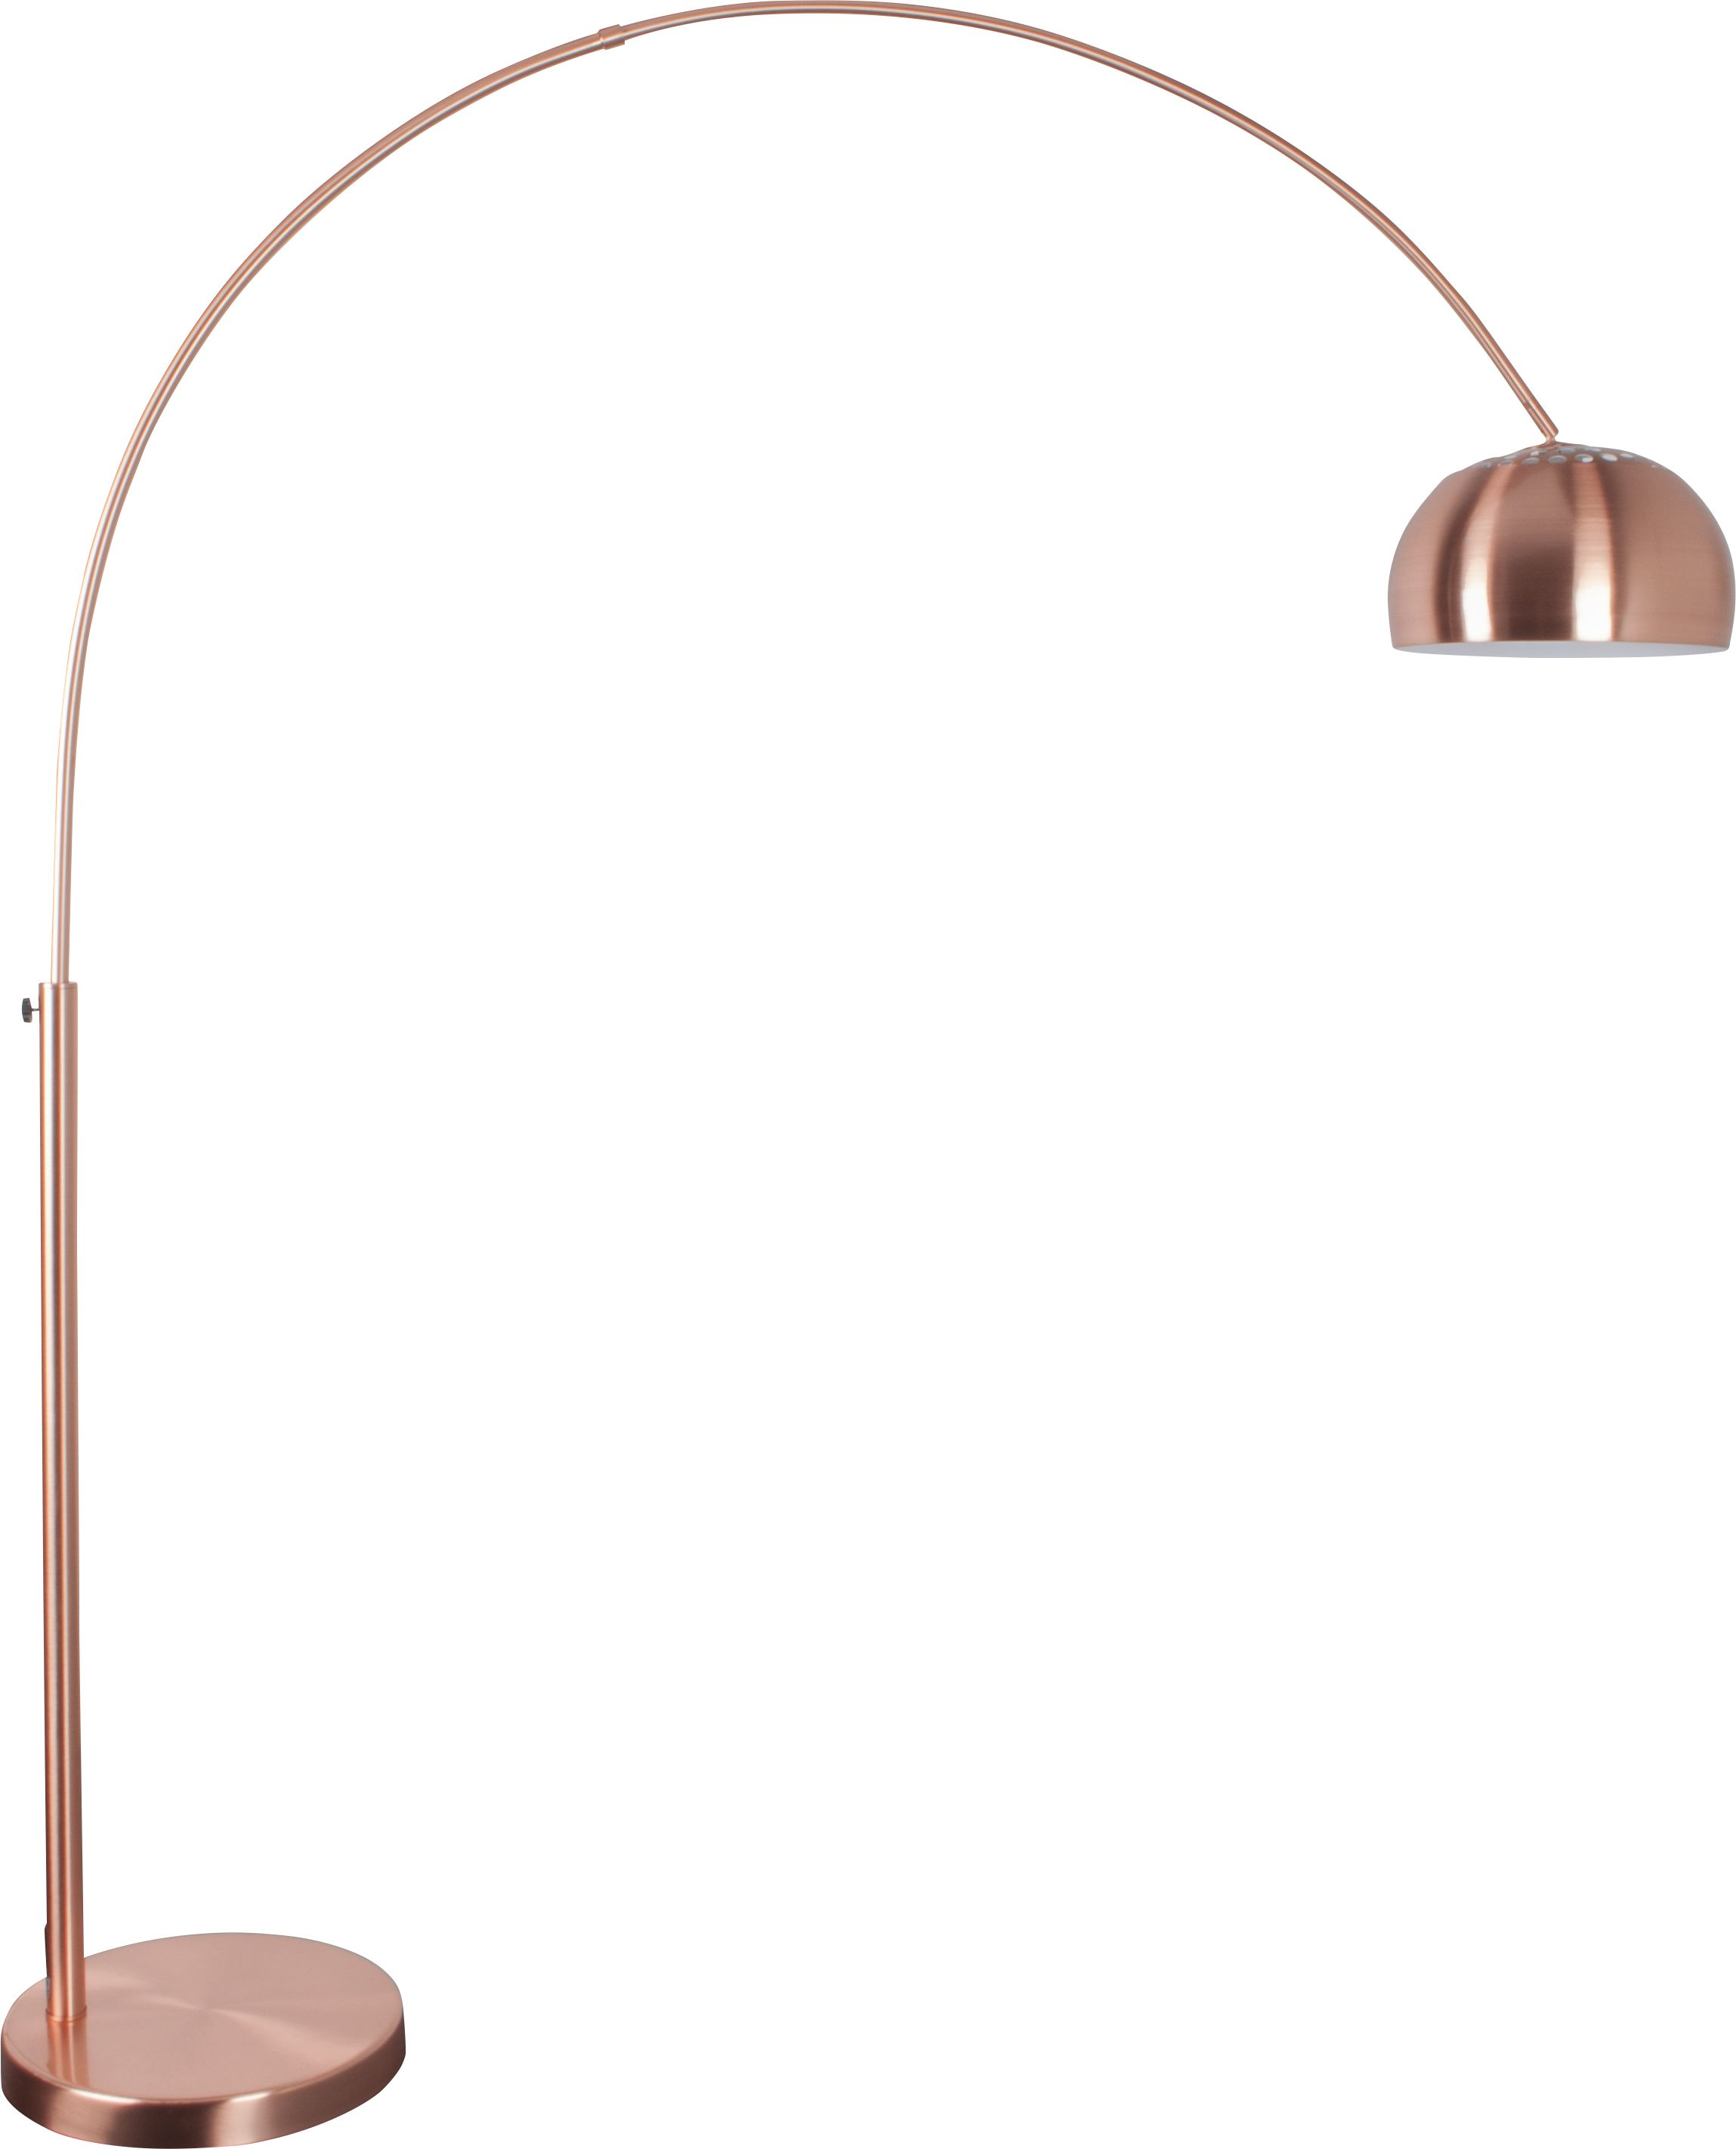 Koperen Staande Lamp Vloerlamp Zuiver Metal Bow Koper In 2019 Colour Of The Year 2015